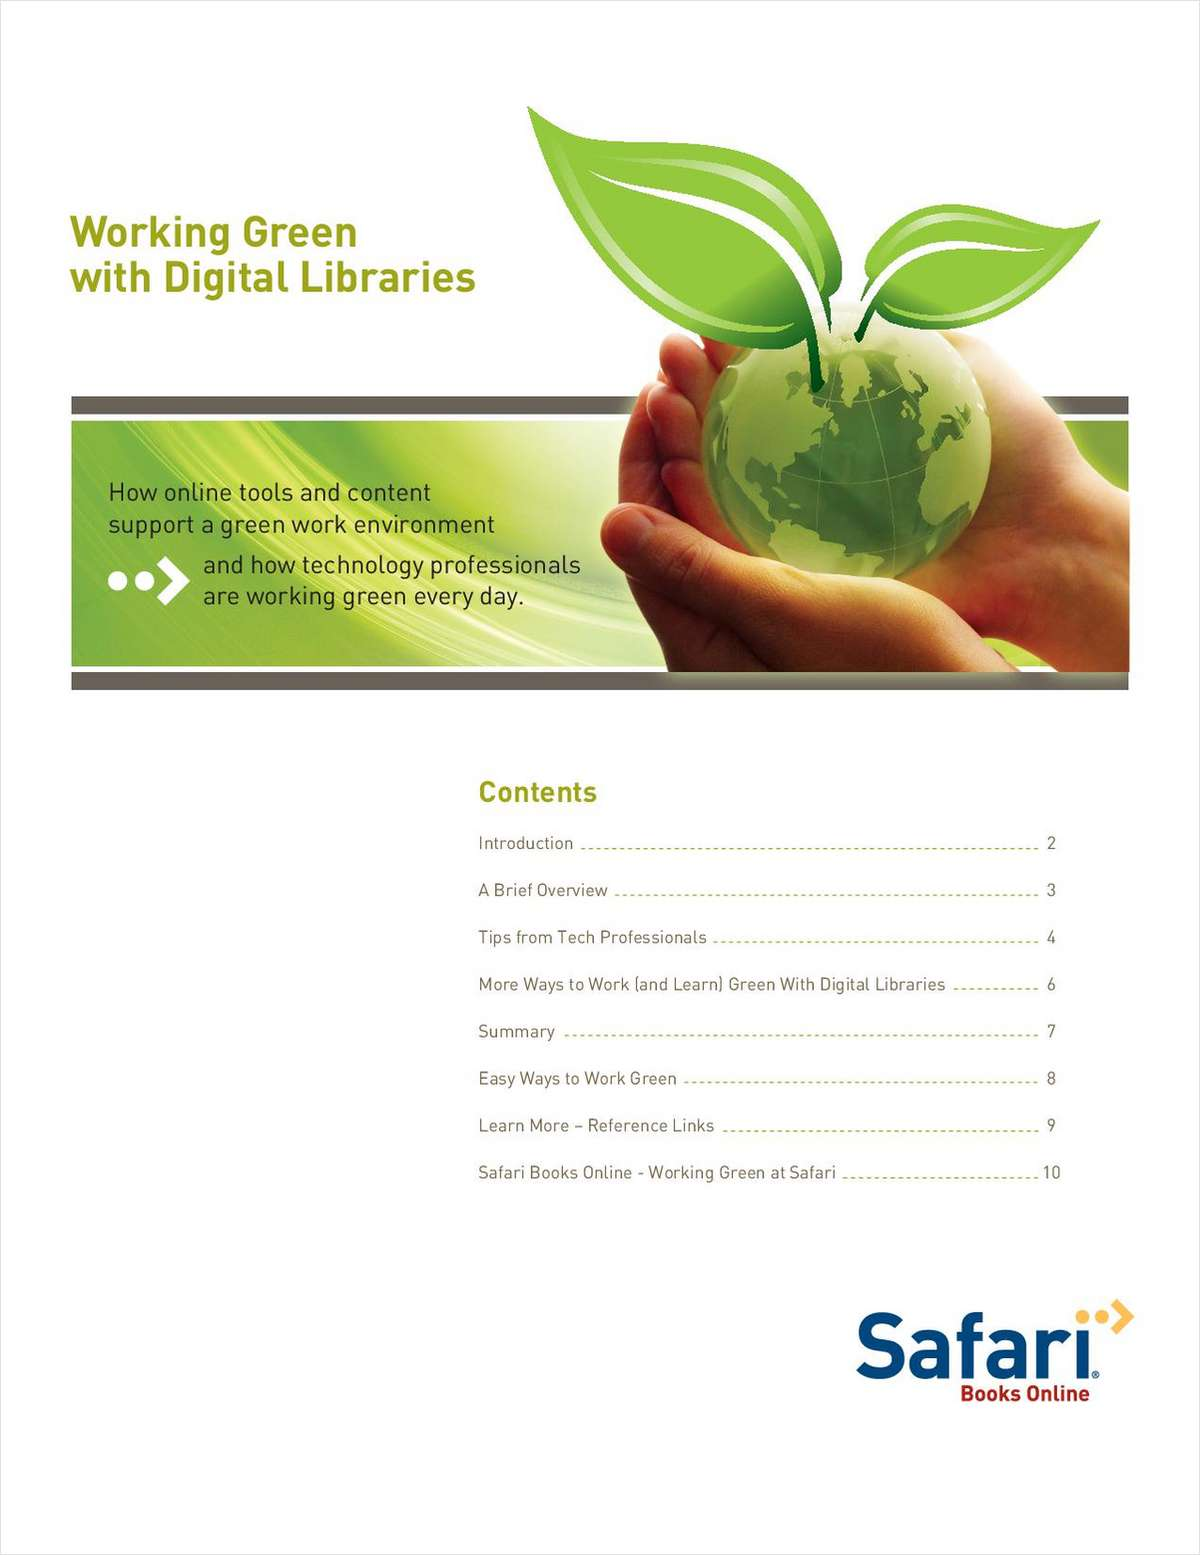 Working Green with Digital Libraries